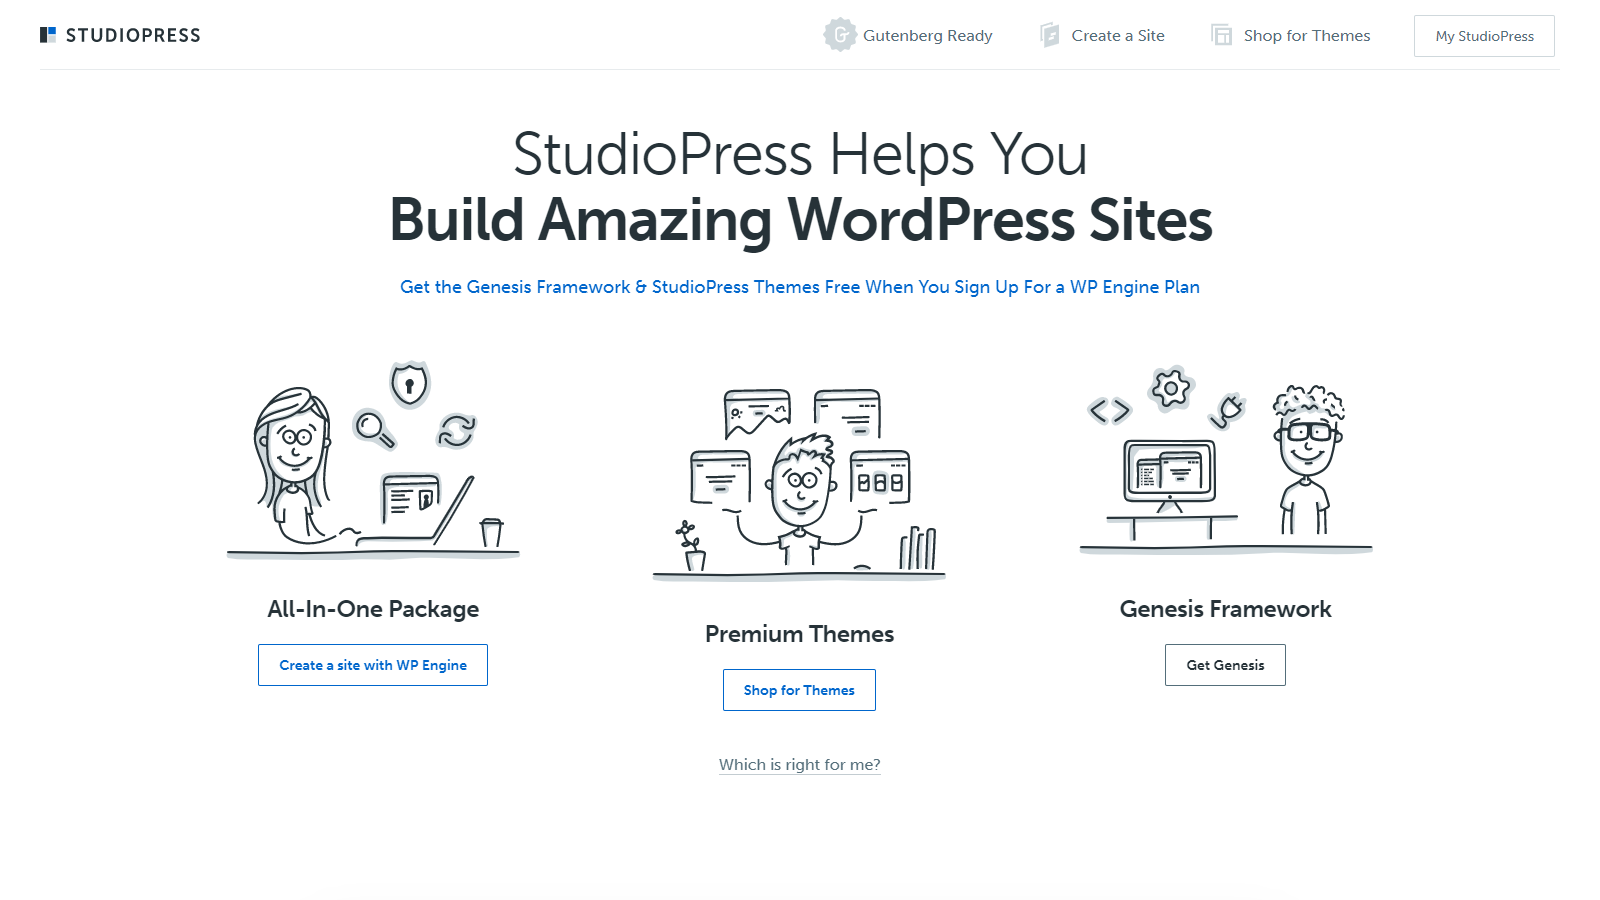 StudioPress sells paid WordPress themes but at premium prices.